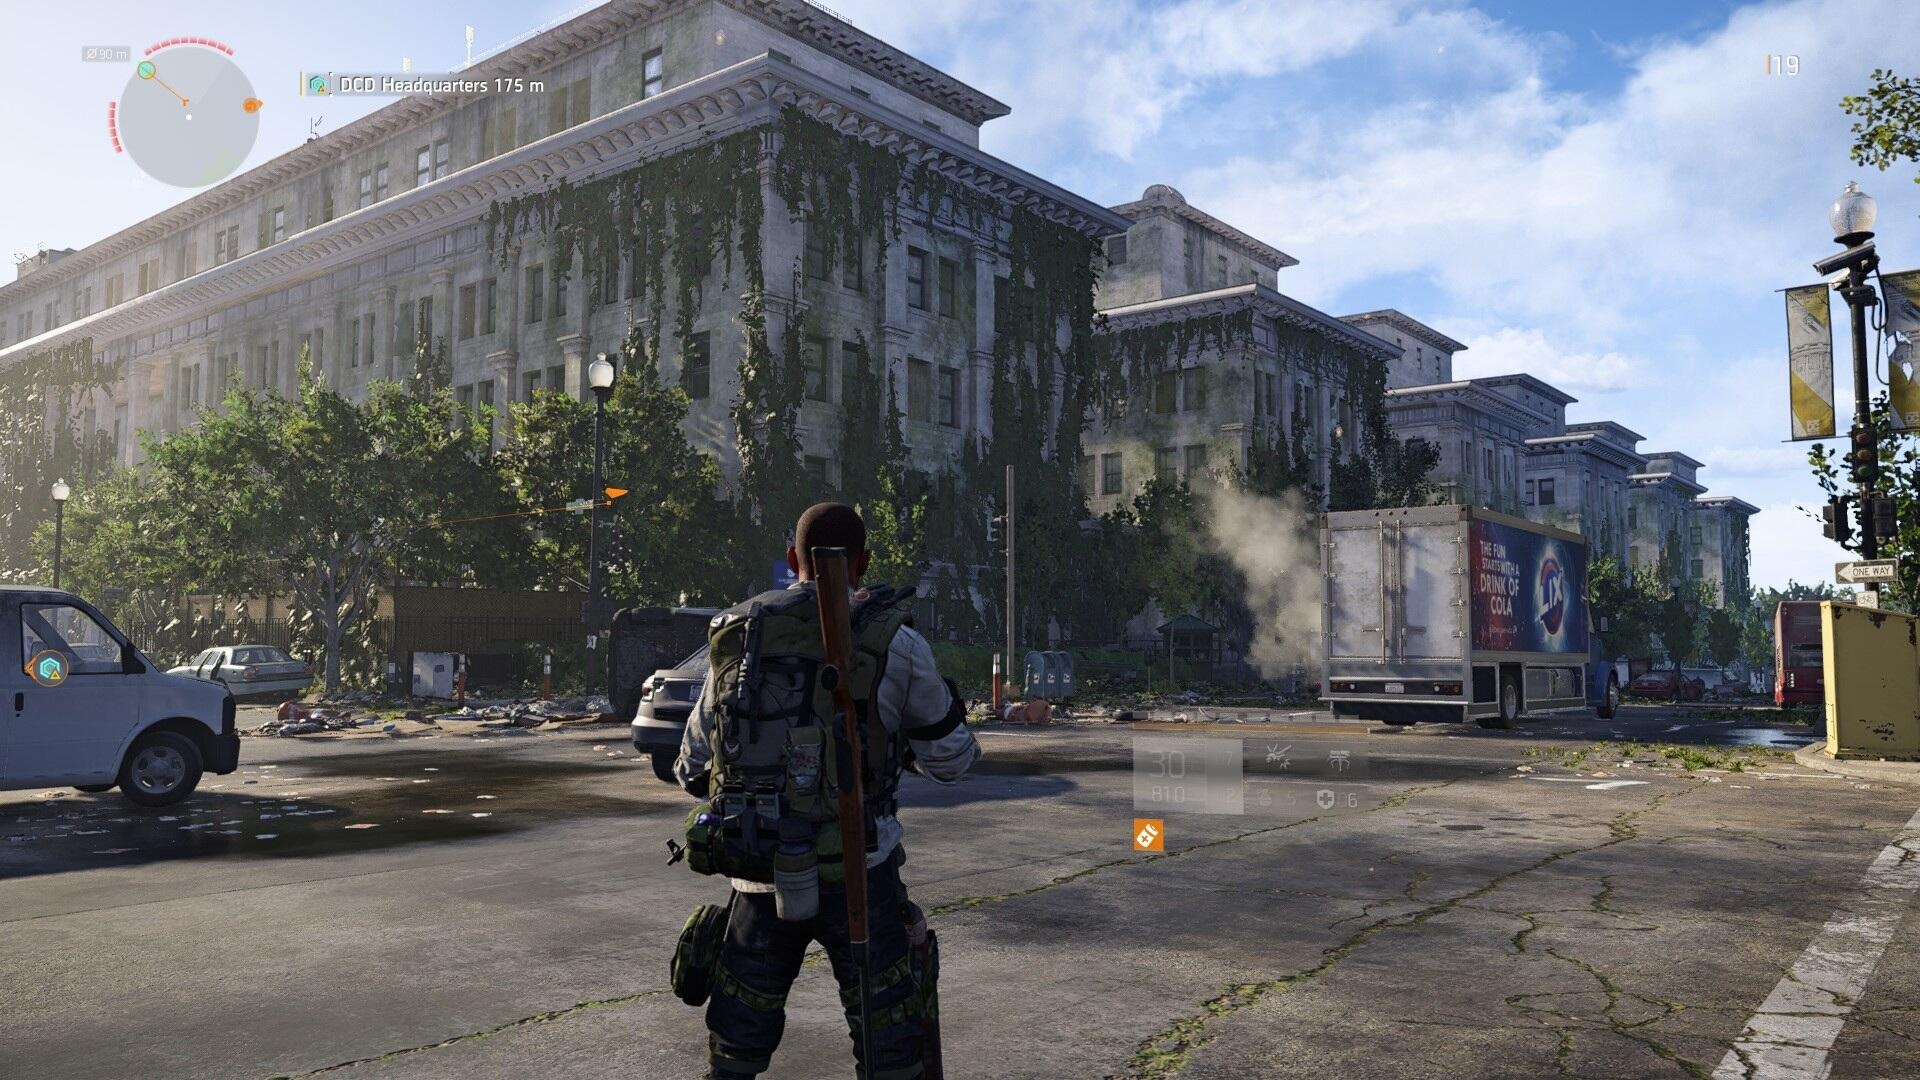 The Division 2 Graphics Comparison Pits Consoles Against PC, Reveals the Console Versions Can Use a Bit More Polish